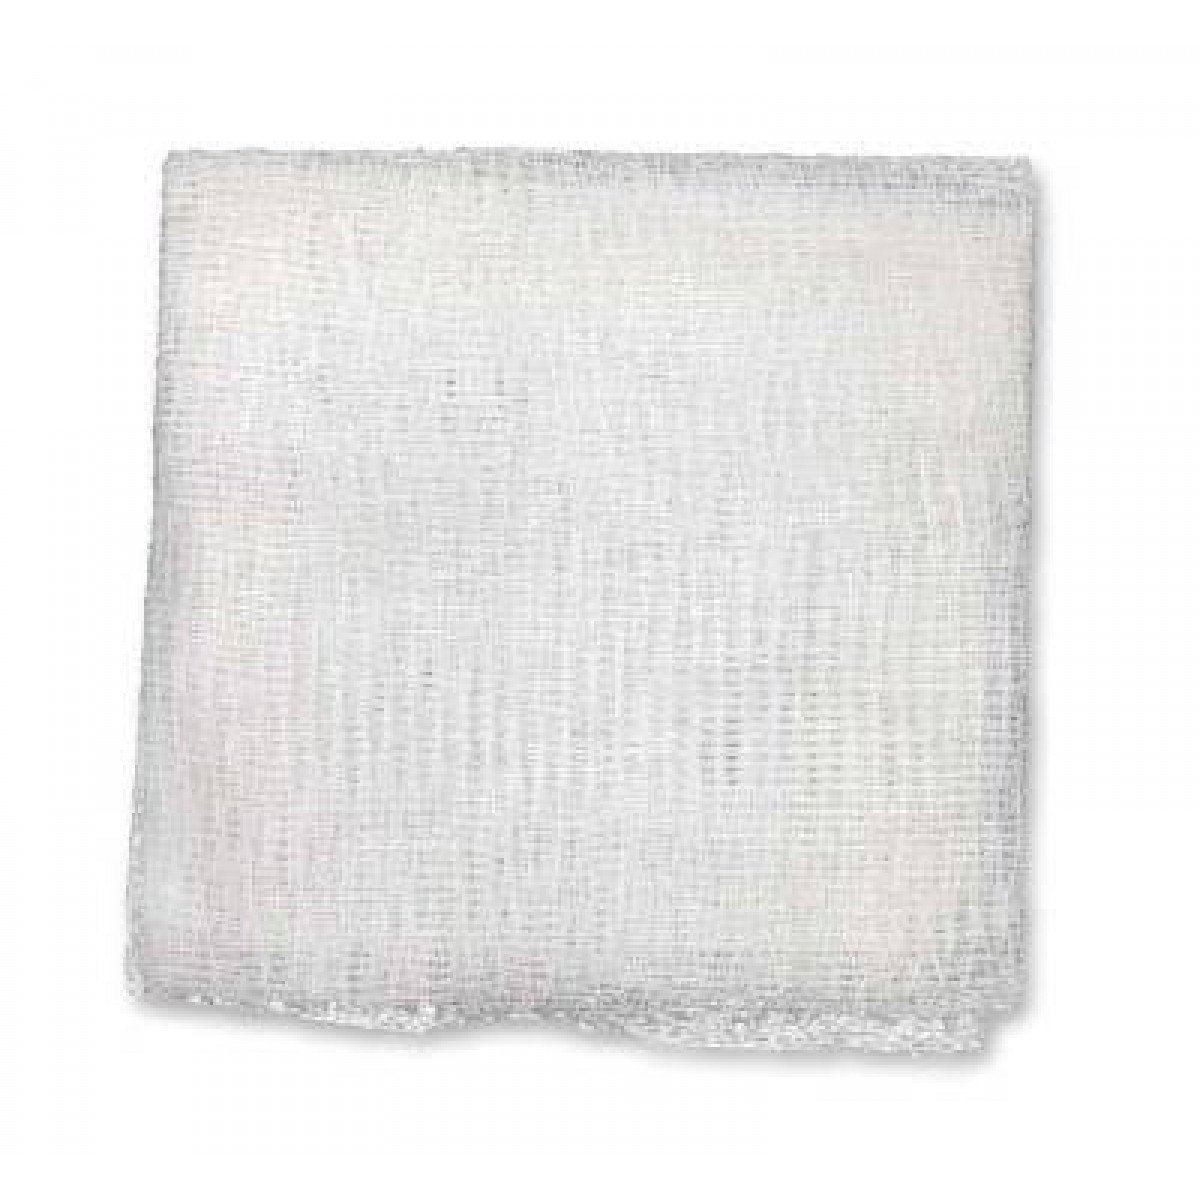 MooreBrand Gauze Pads, Sterile, 12-Ply, 2 x 2 Inch - Box of 100